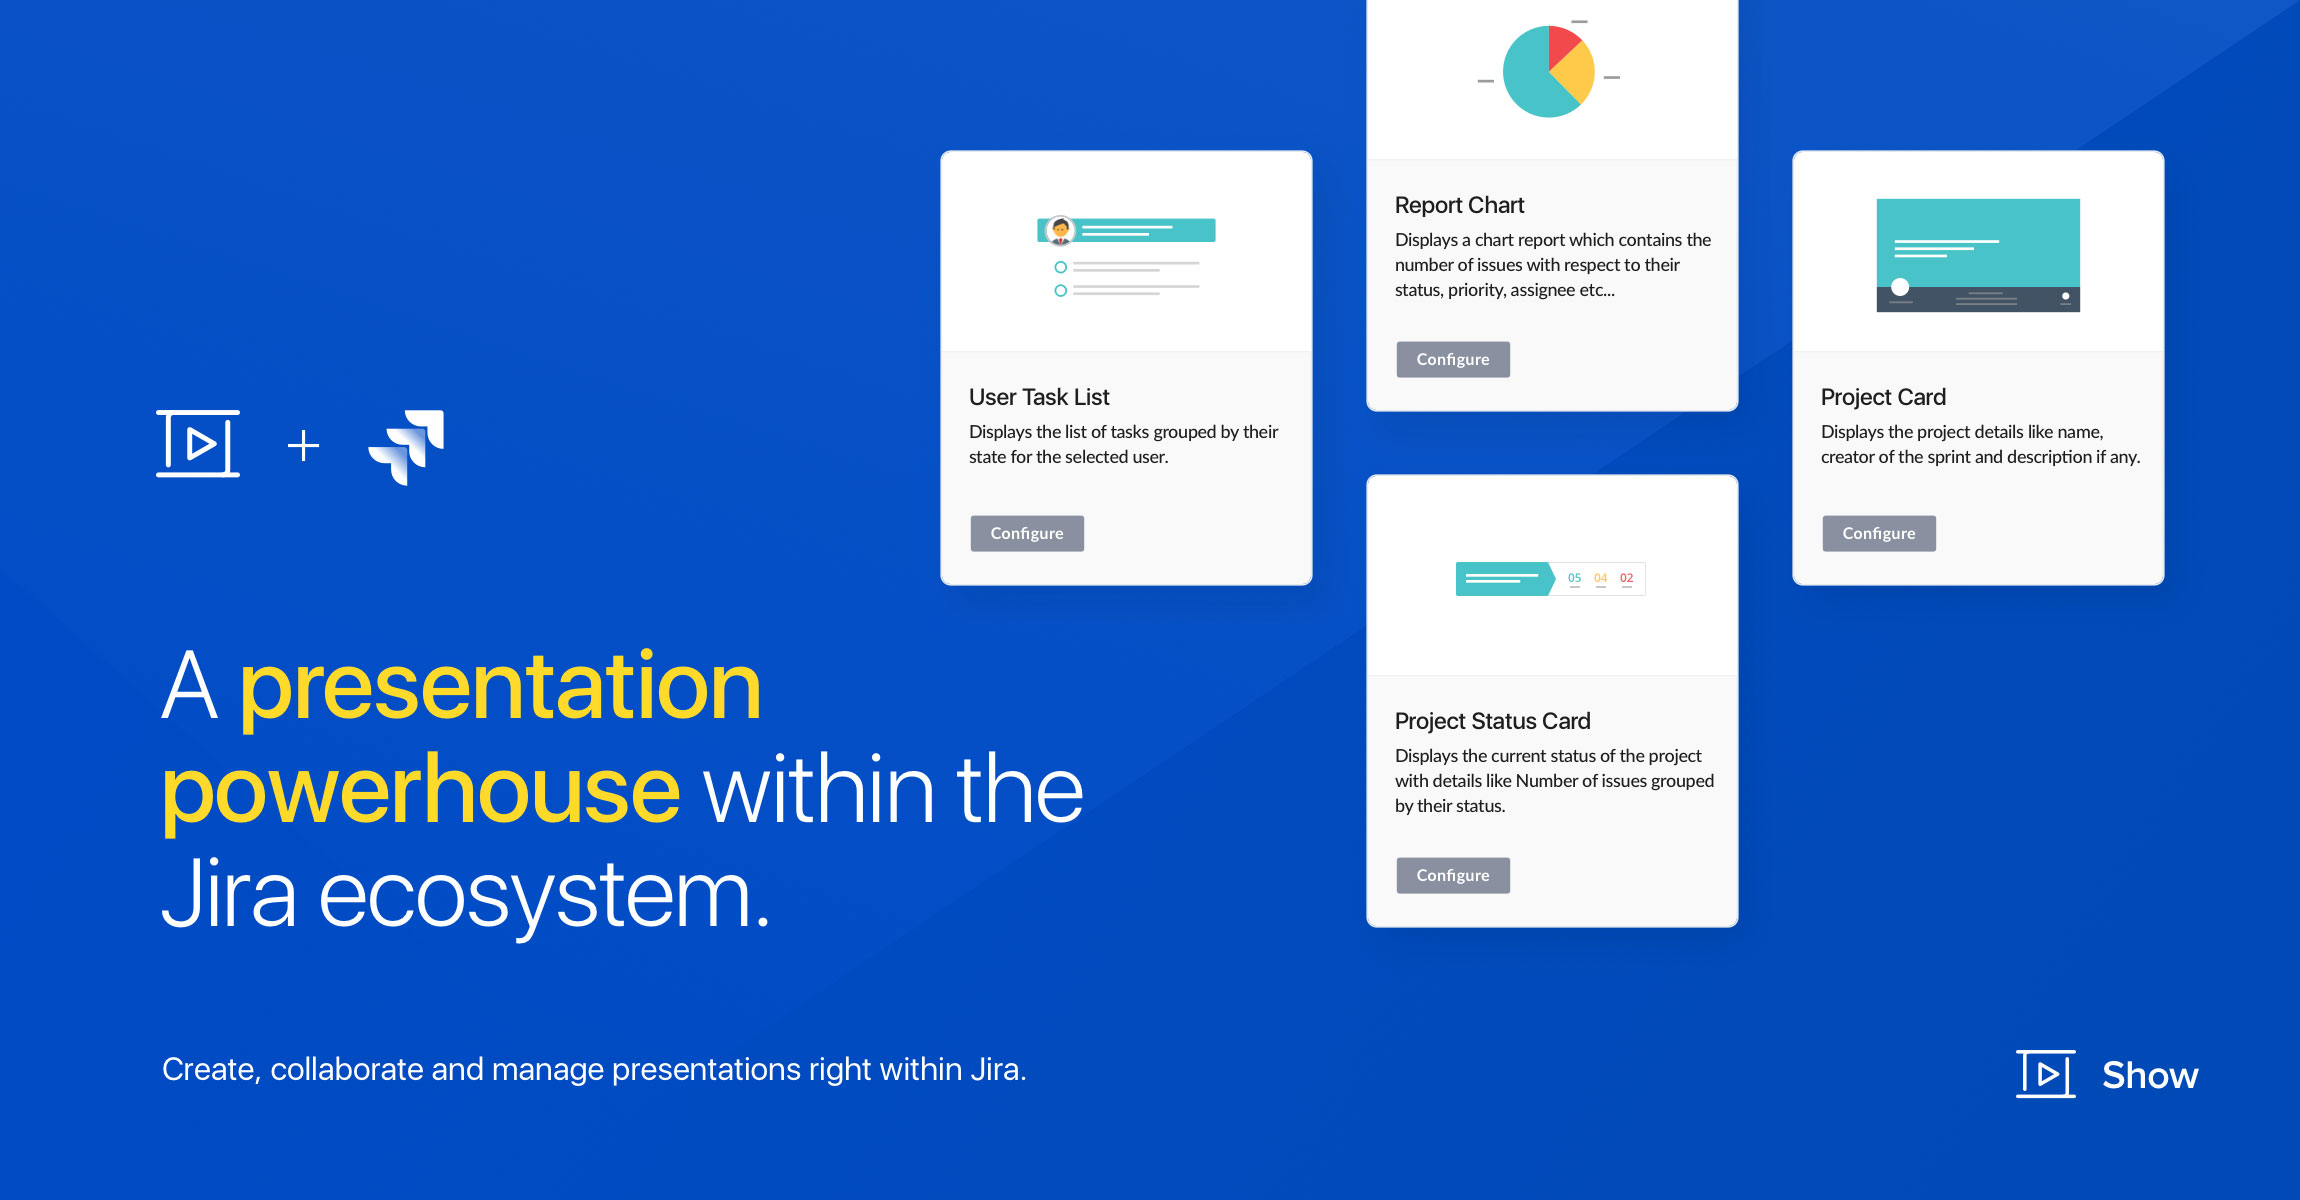 Introducing Zoho Show for Jira: A presentation tool for all your project management needs